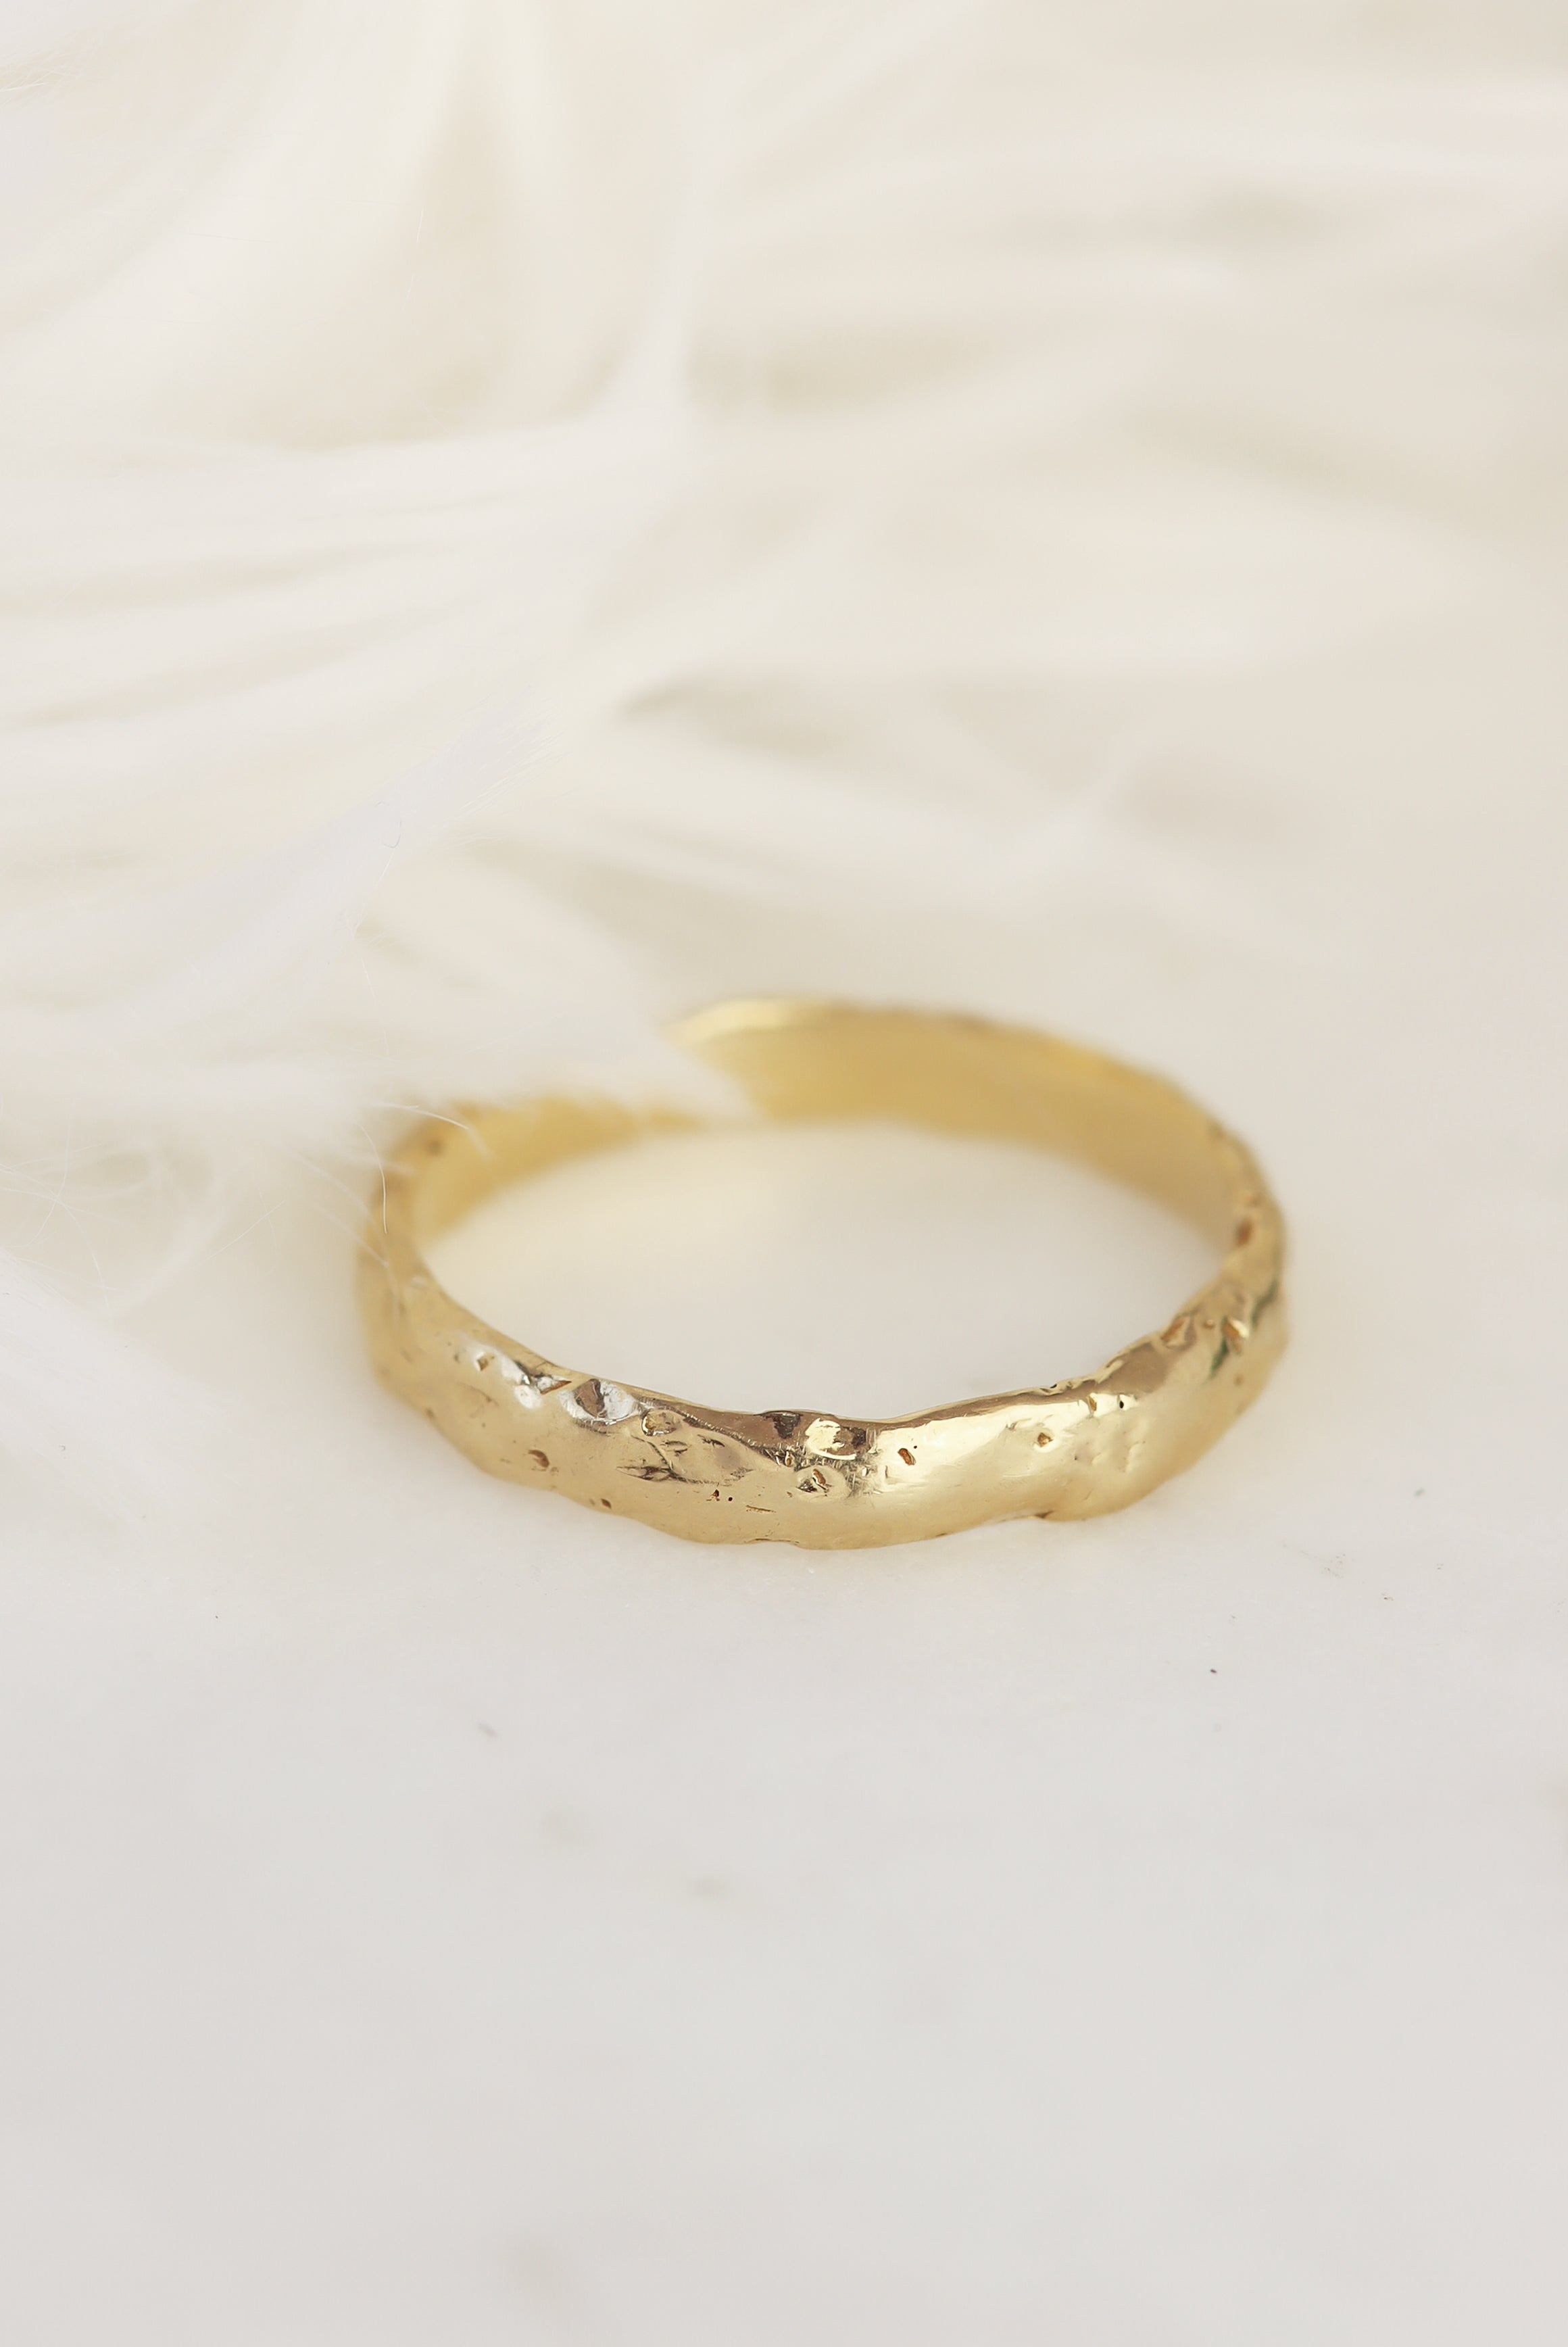 hand-textured-rustic-wide-wedding-band